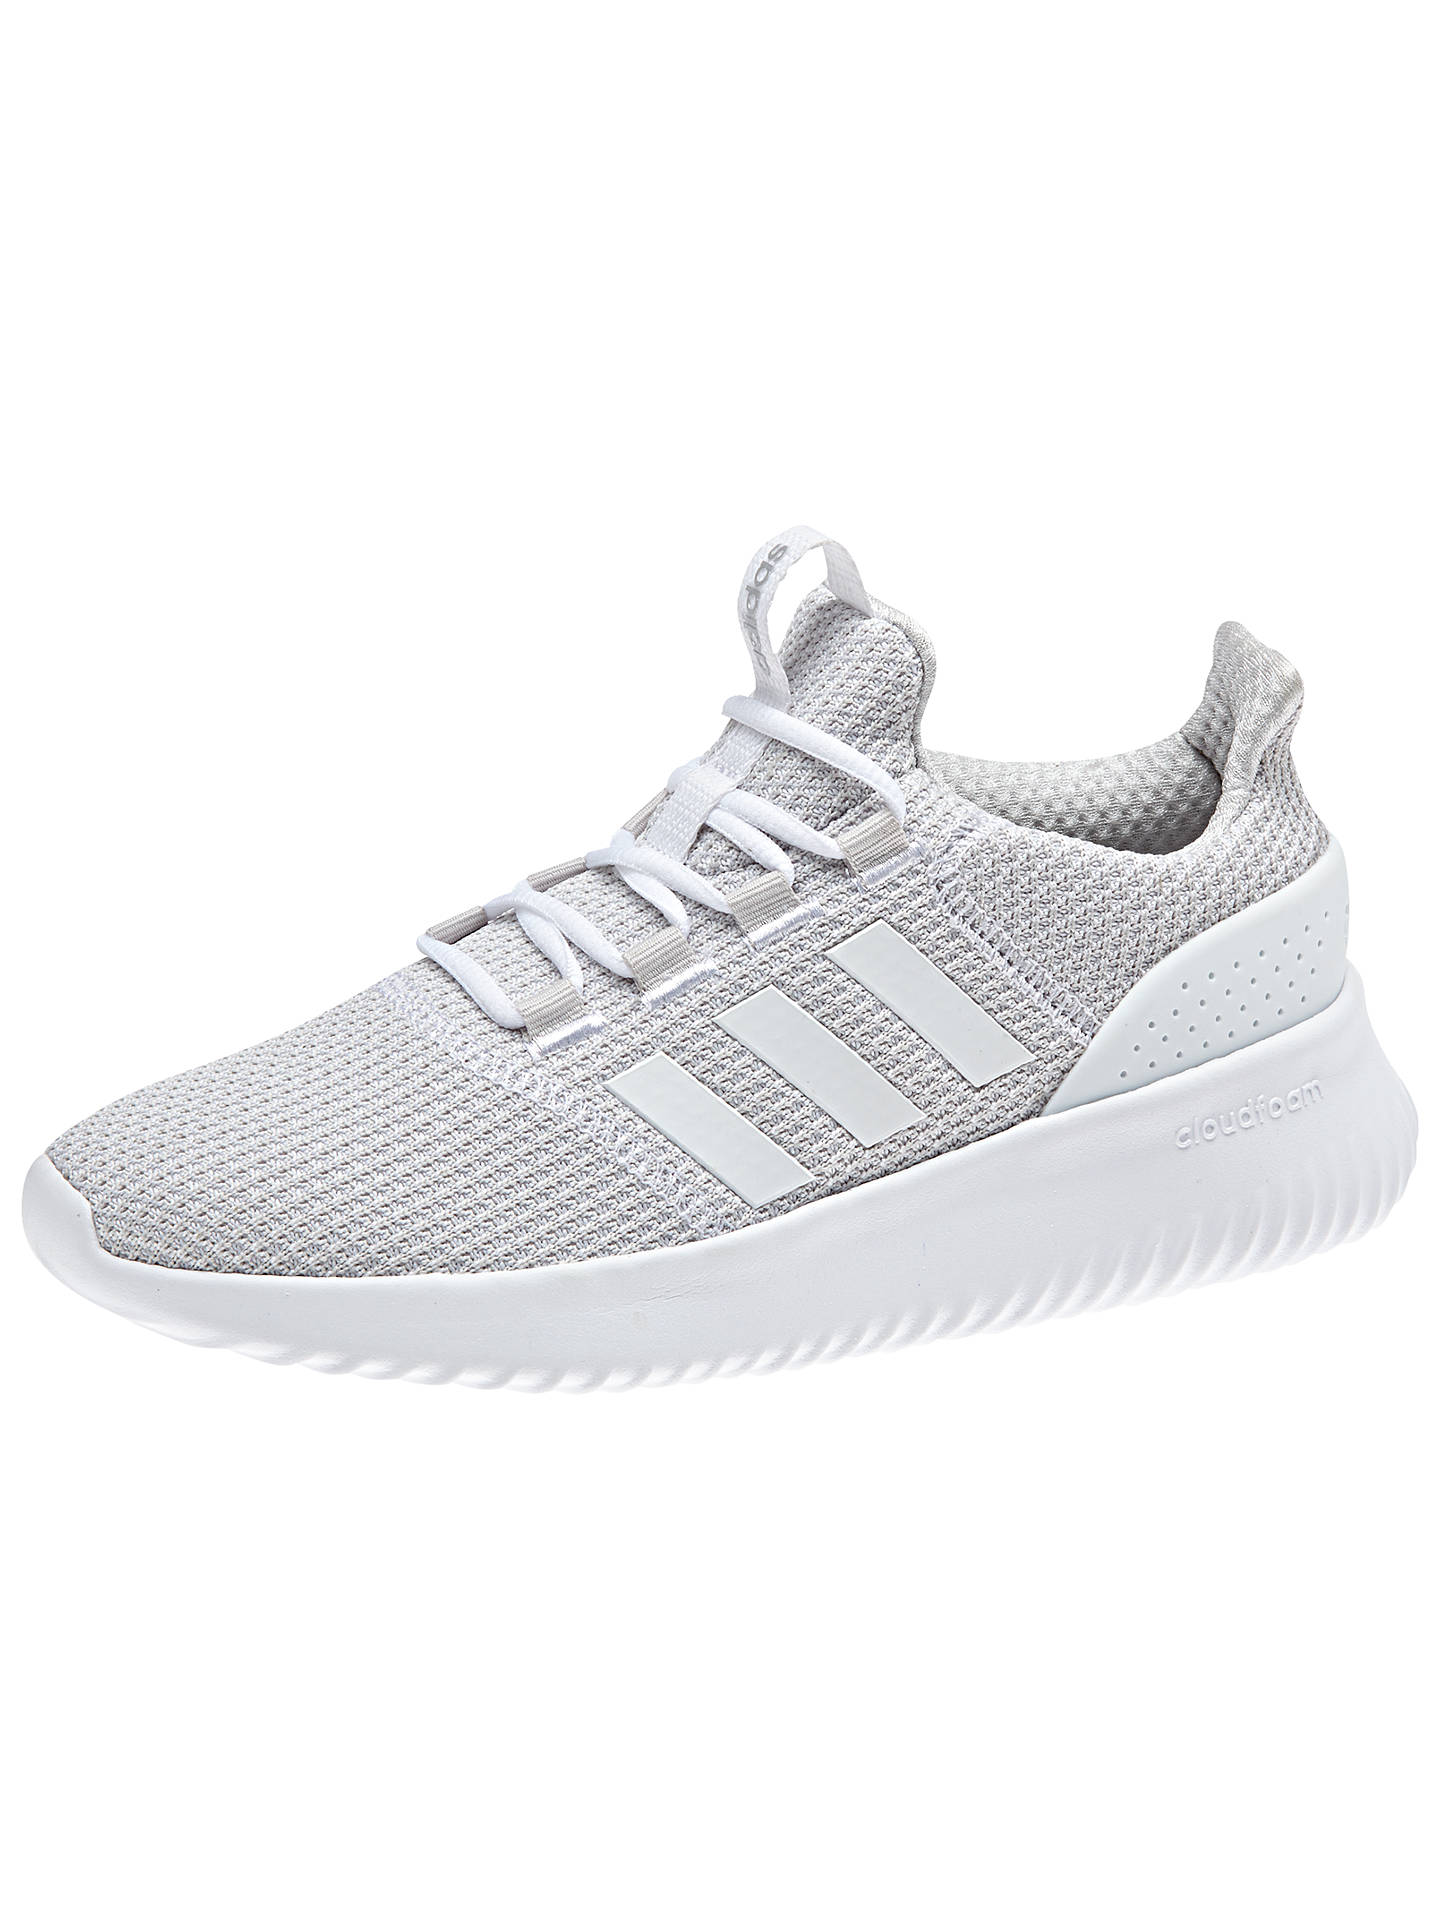 adidas cloudfoam trainers women grey